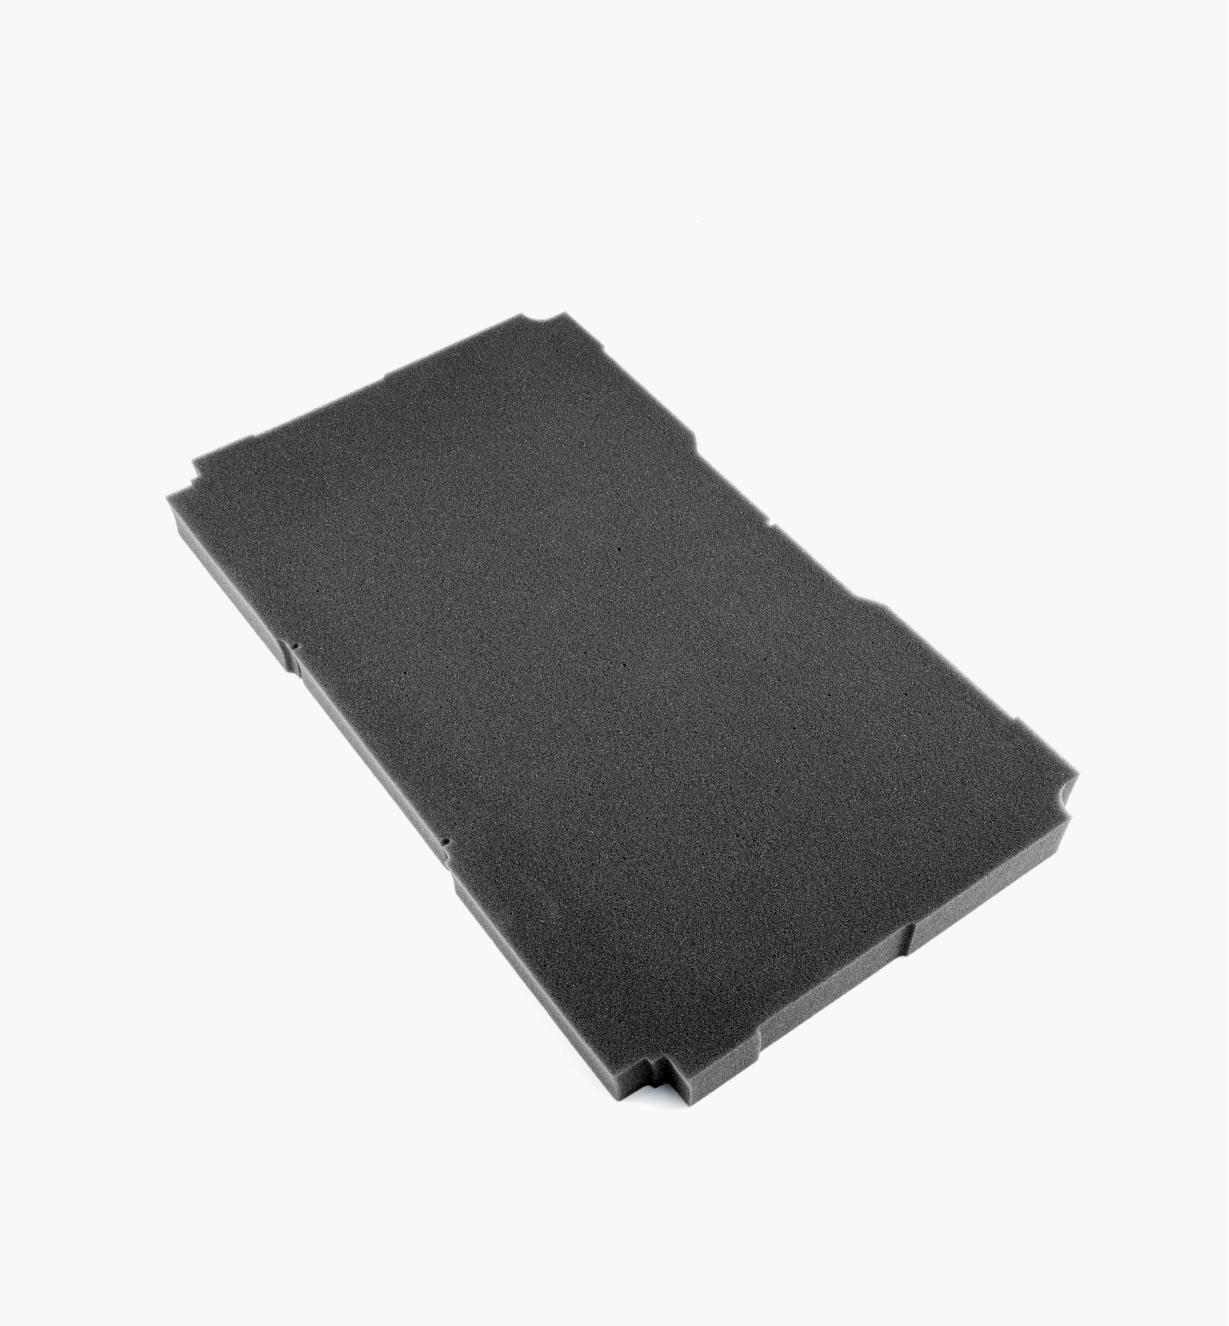 68K4566 - Base Foam for T-Loc Midi Systainer